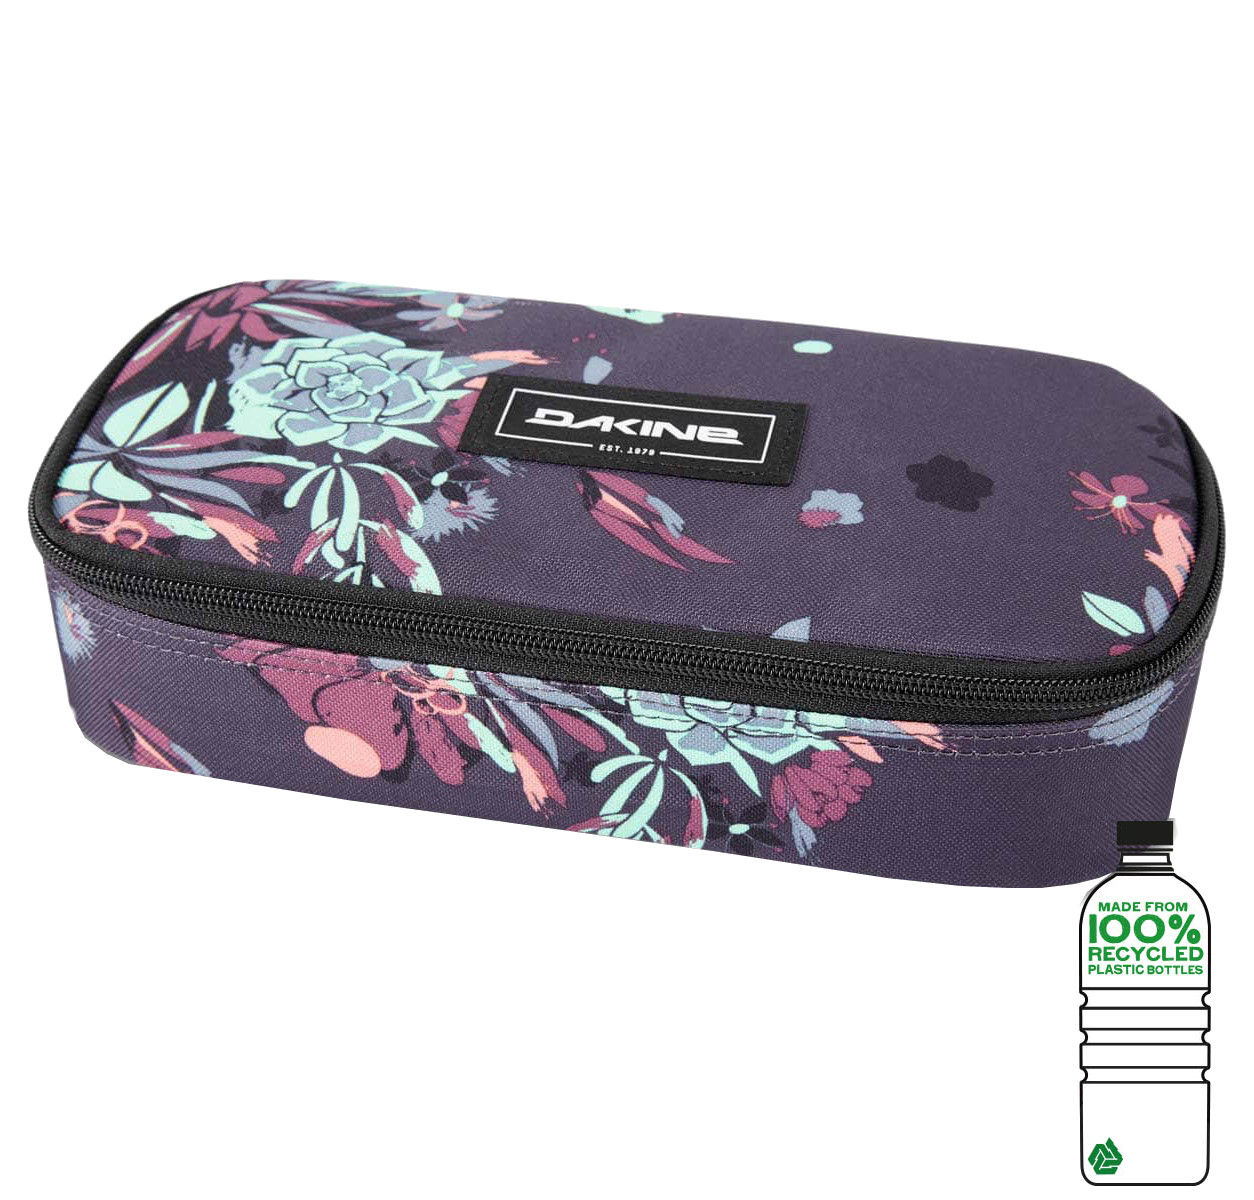 Dakine 'School Case XL' Perennial